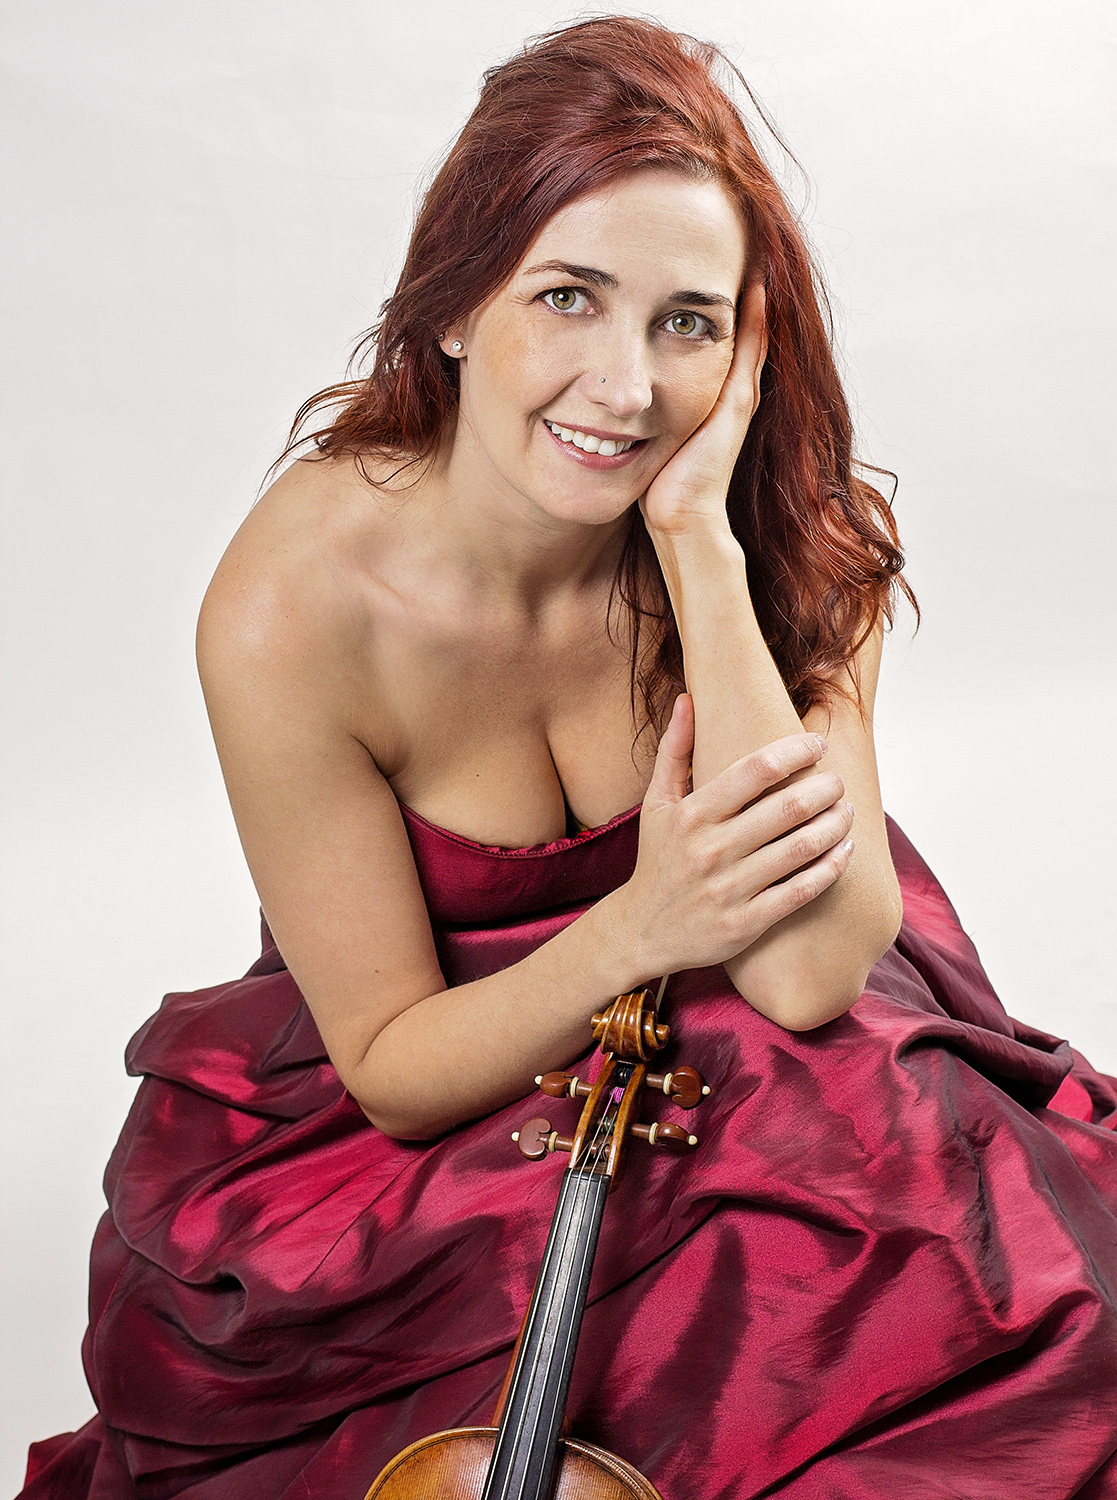 Rhiannon sitting in a red dress with her violin